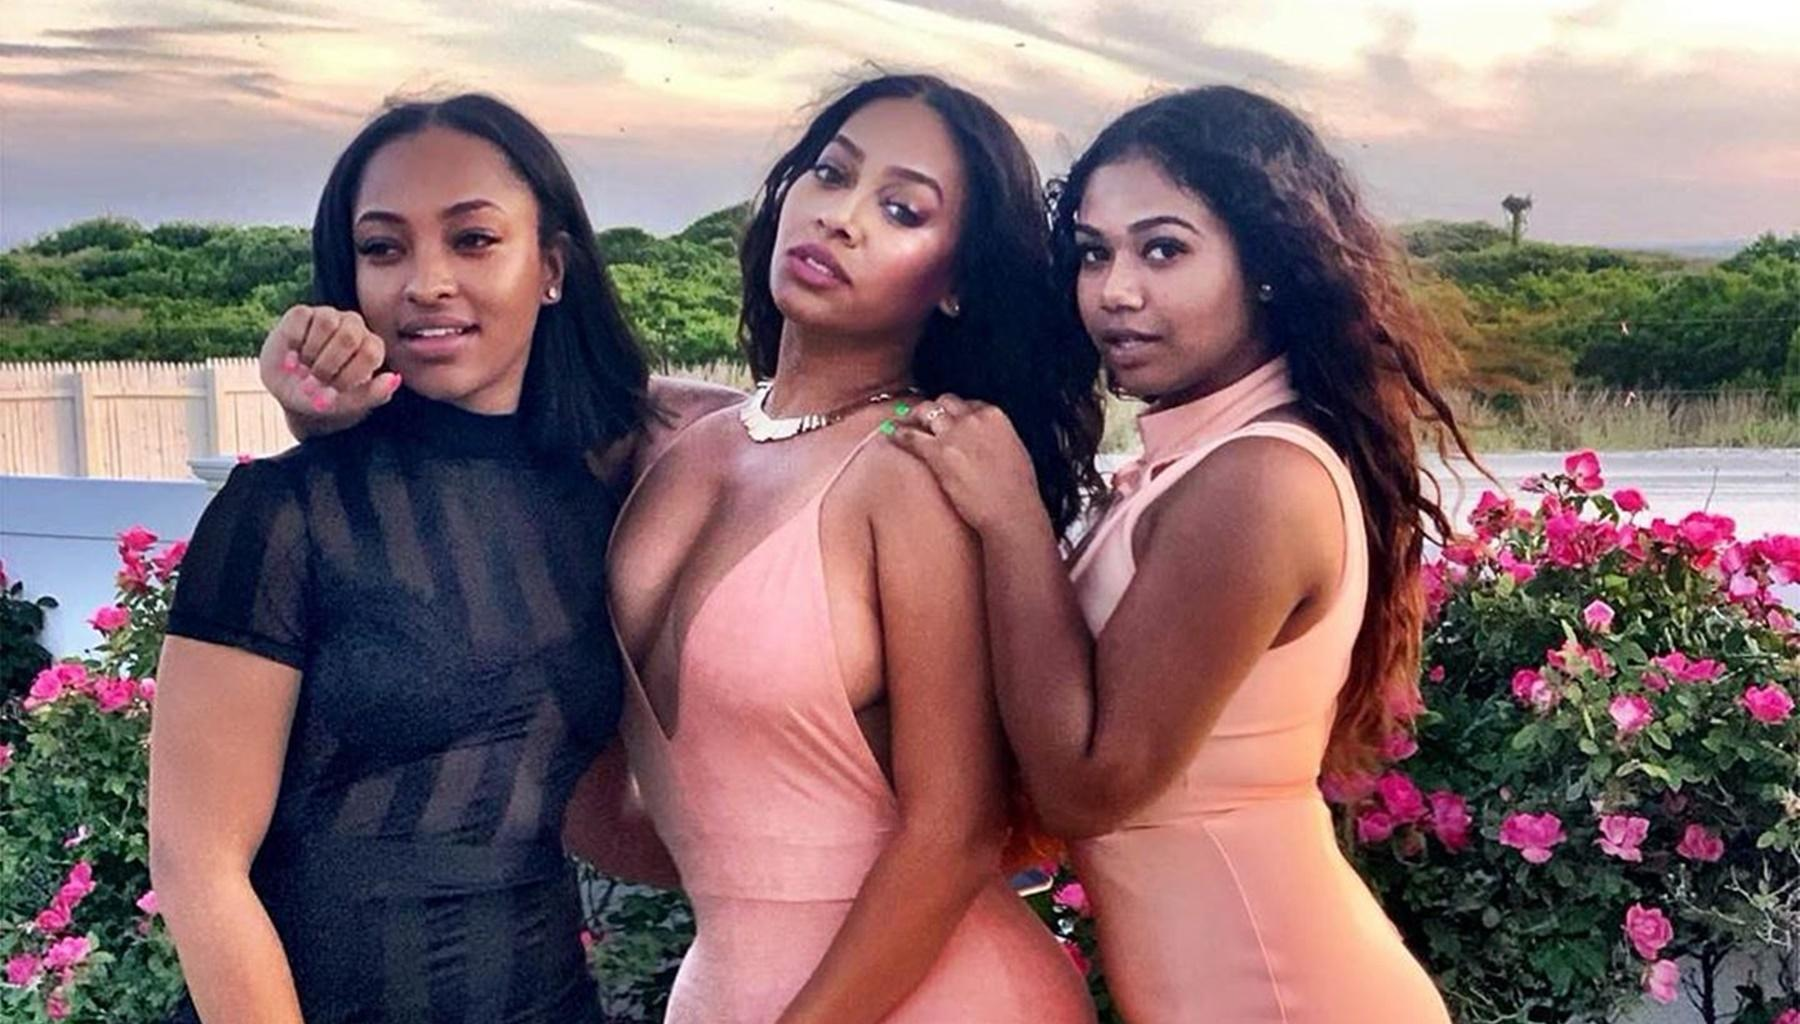 La La Anthony's Killer Curves In A Bathing Picture Is Overshadowed By Super Stunning Cousins